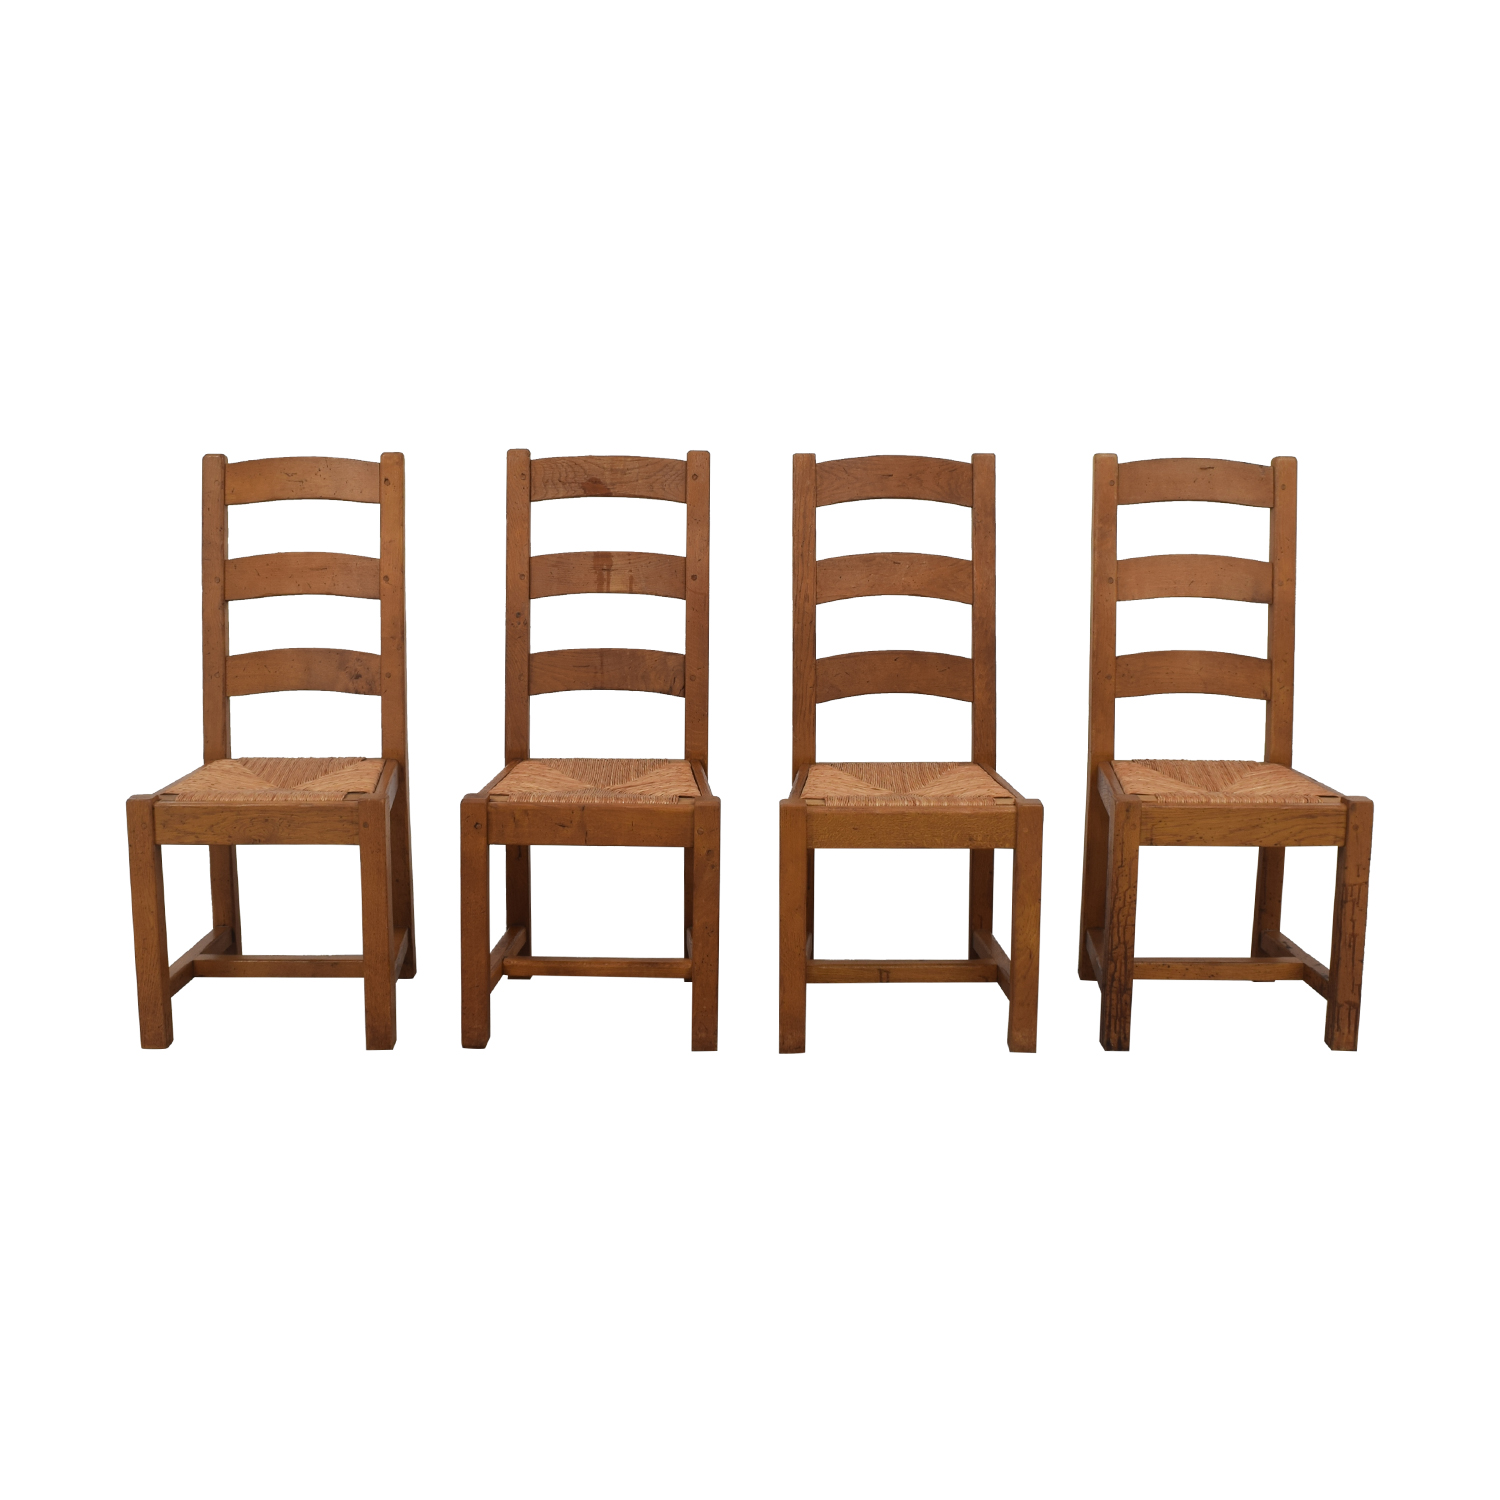 Crate & Barrel Crate & Barrel French Farm Dining Chairs coupon